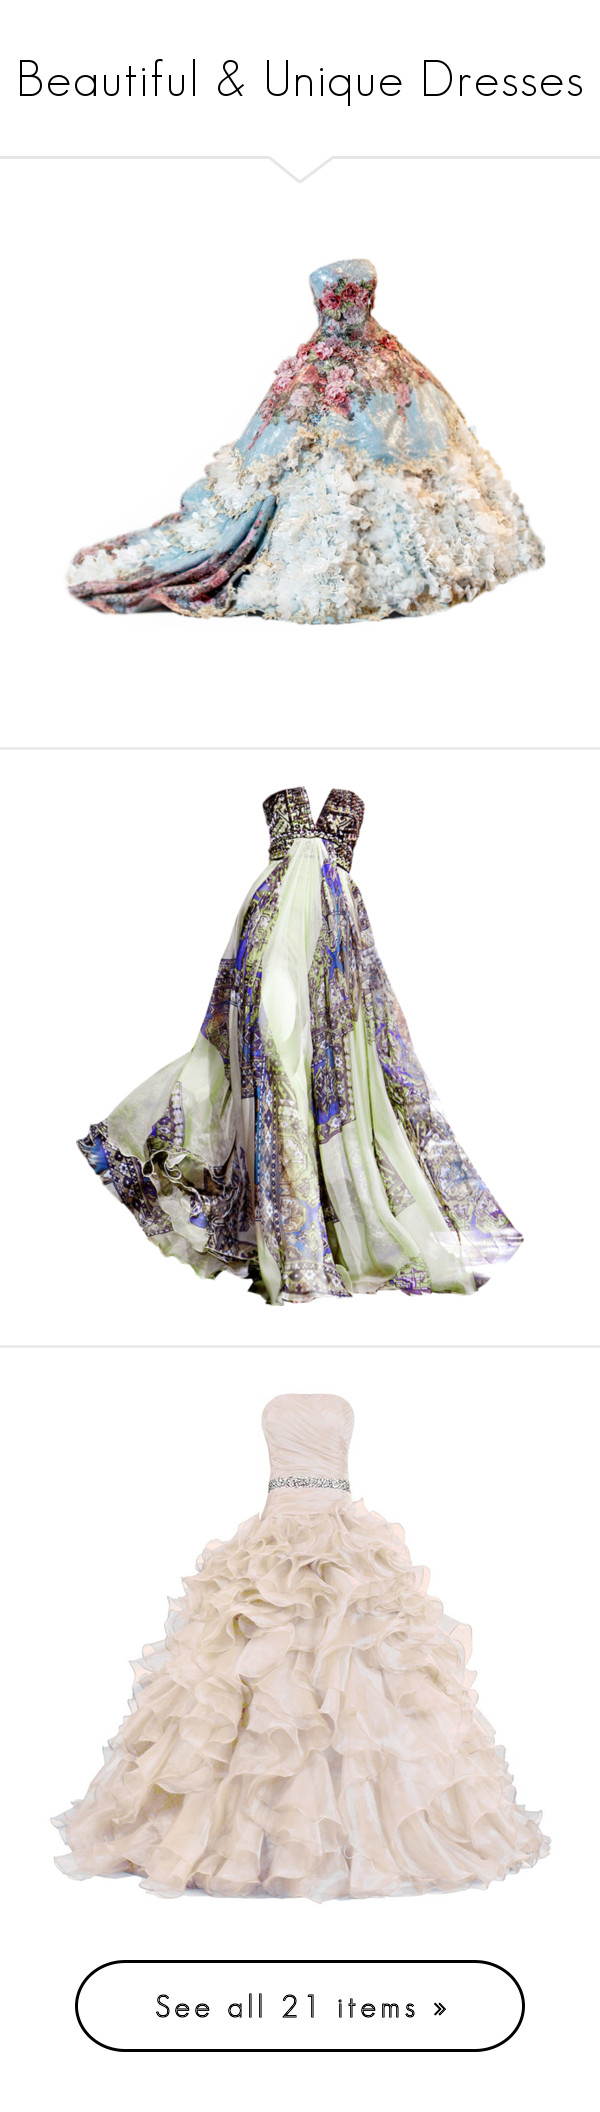 """""""Beautiful & Unique Dresses"""" by reignie on Polyvore featuring dresses, gowns, satinee, edited, long dresses, vestidos, zuhair murad gowns, zuhair murad dresses, zuhair murad evening gowns and zuhair murad"""